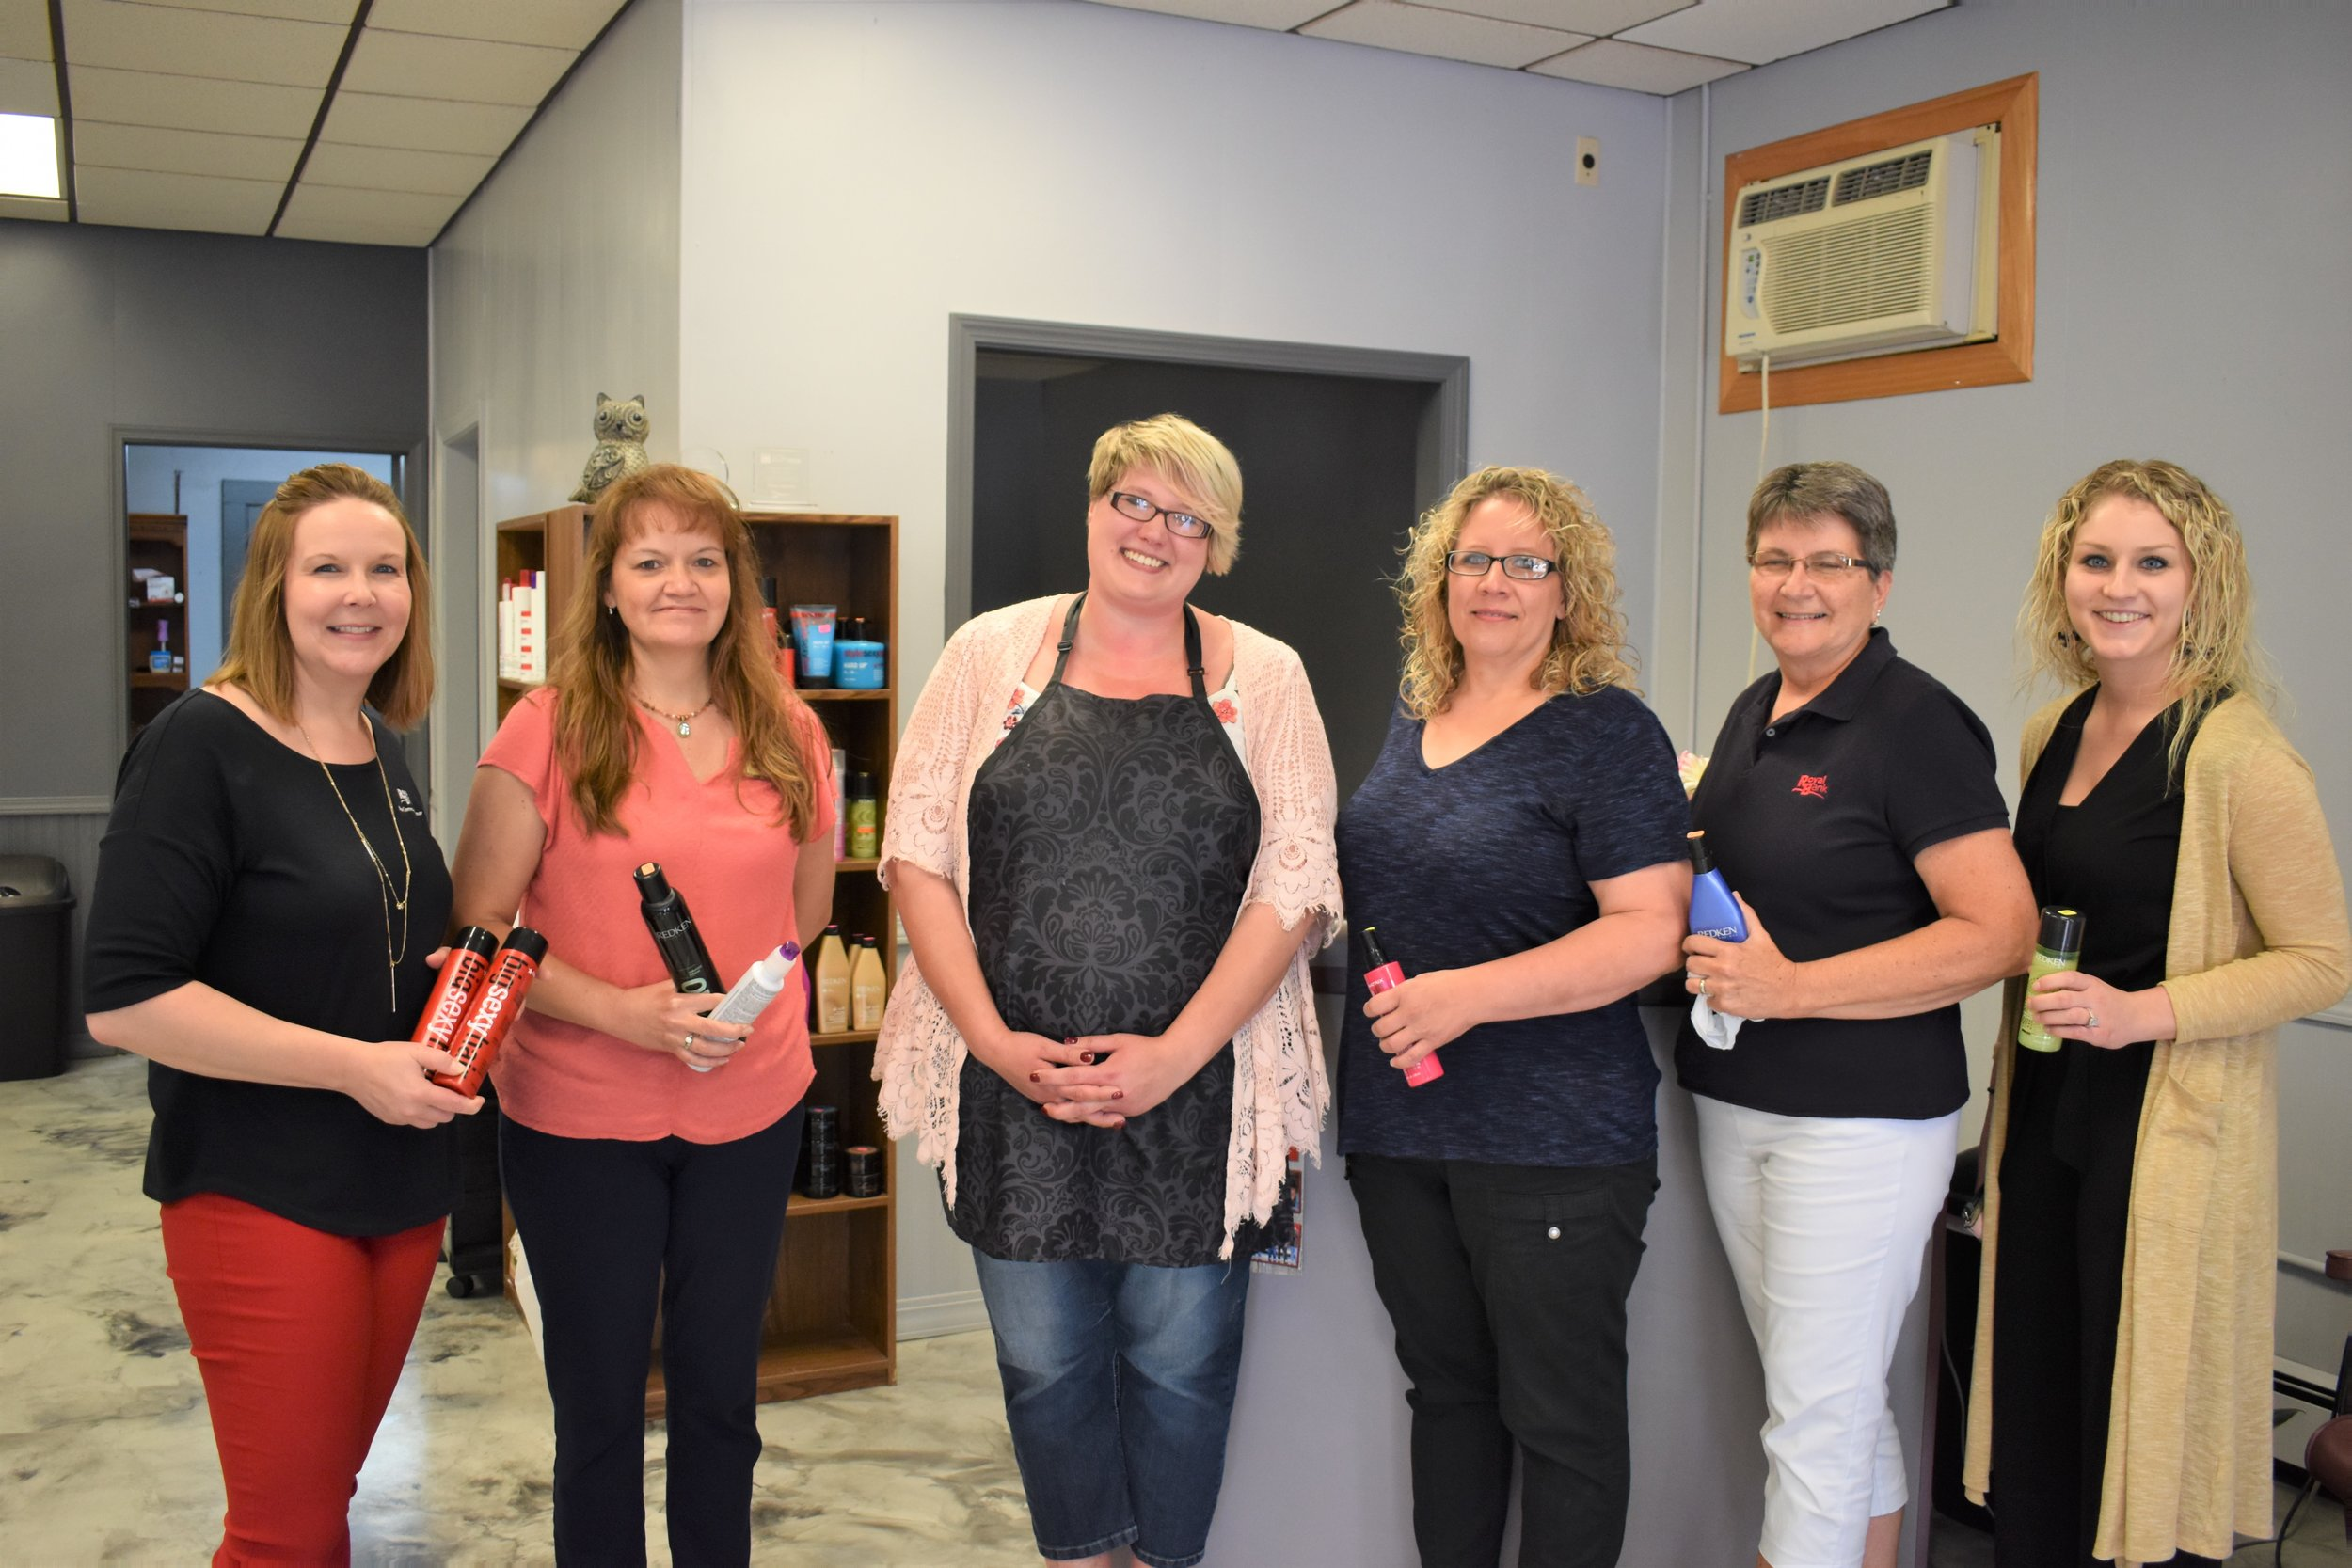 Some of Royal Banks 'Cash Mob' participants L to R- Heather Mobley, Jill Eischenk, Guys and Gals owner Tricia Johnson, Kari Van Hecker, Bev Downing, and Shania Landsinger